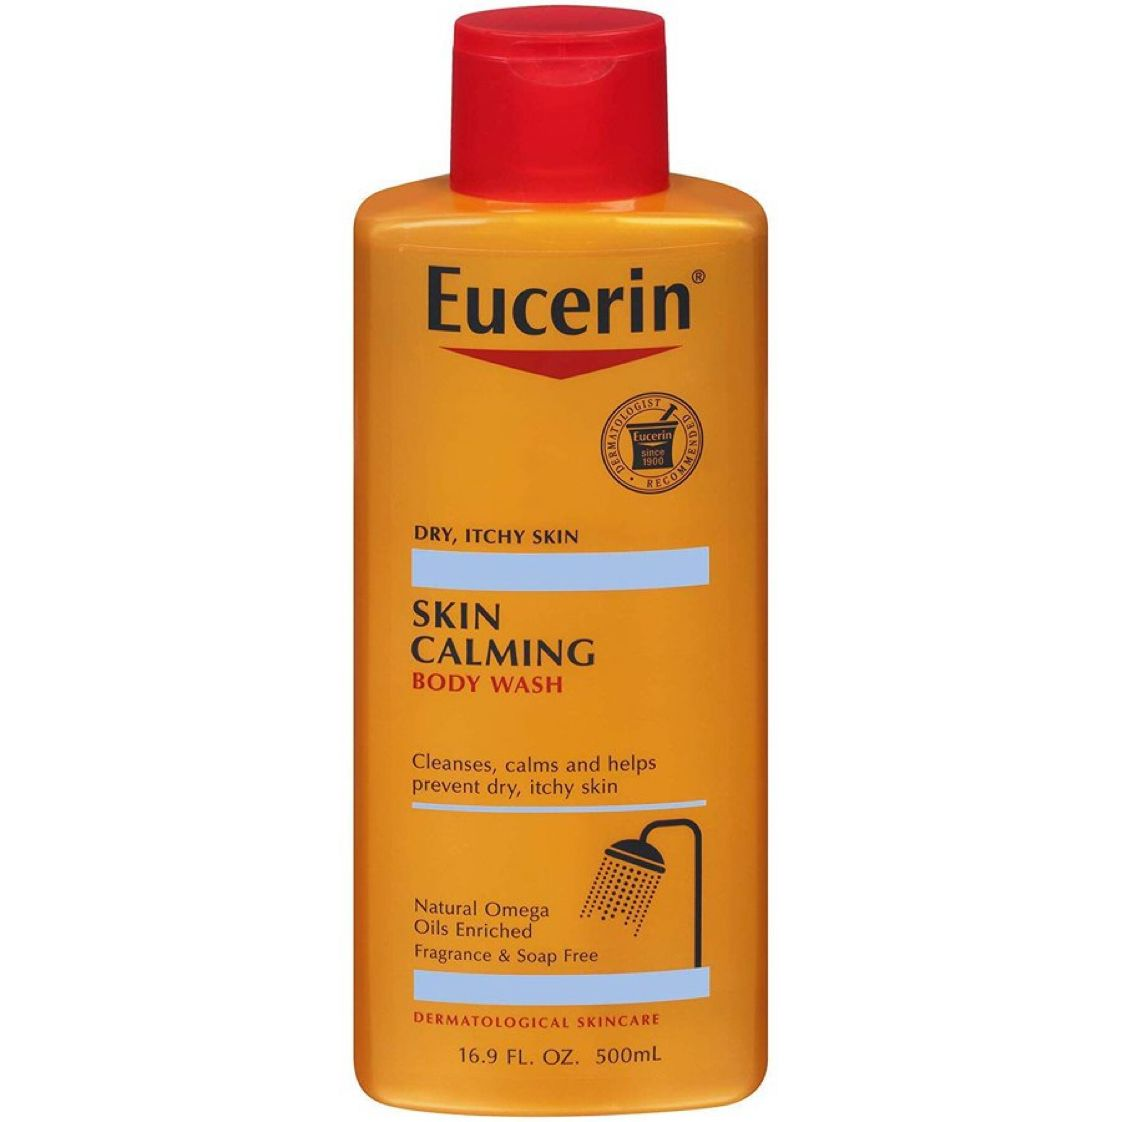 Eucerin Skin Calming Body Wash - Cleanses and Calms to Help Prevent Dry, Itchy Skin   $5.45 with Free Prime Shipping    #steals #deals #stealsanddeals